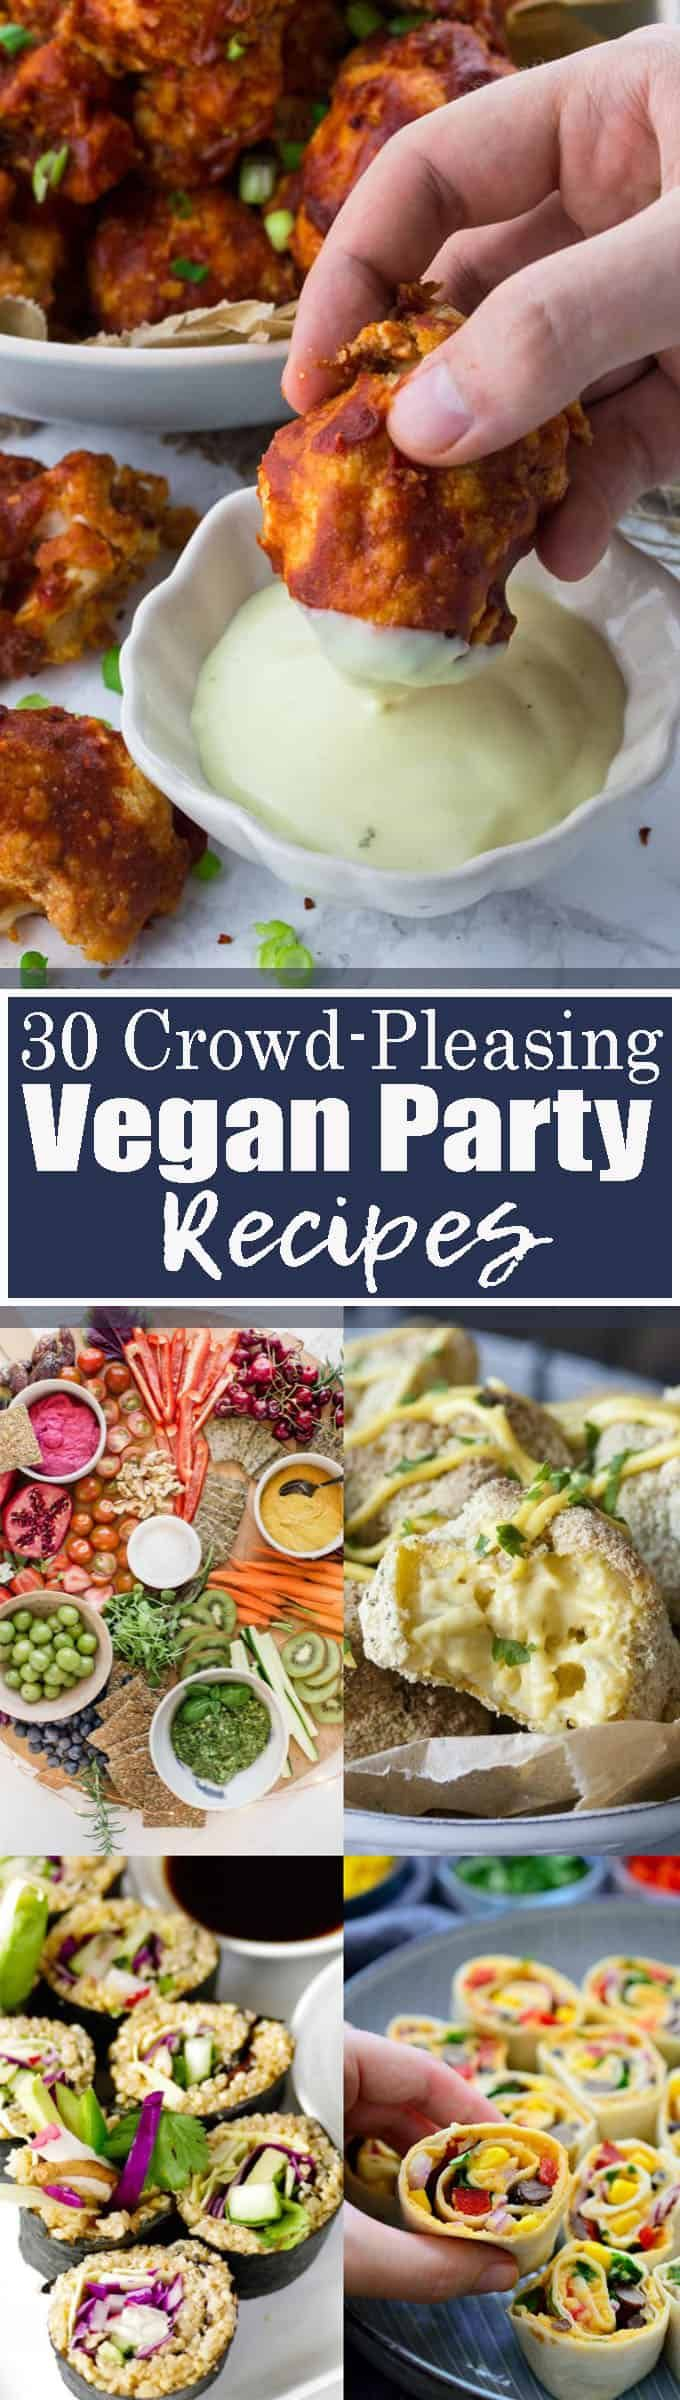 Got a party or potluck coming up? This list of 30 vegan party recipes includes all the recipes you need: vegan dips, salads, vegan finger food, and even desserts! Find more vegan recipes at veganheaven.org <3